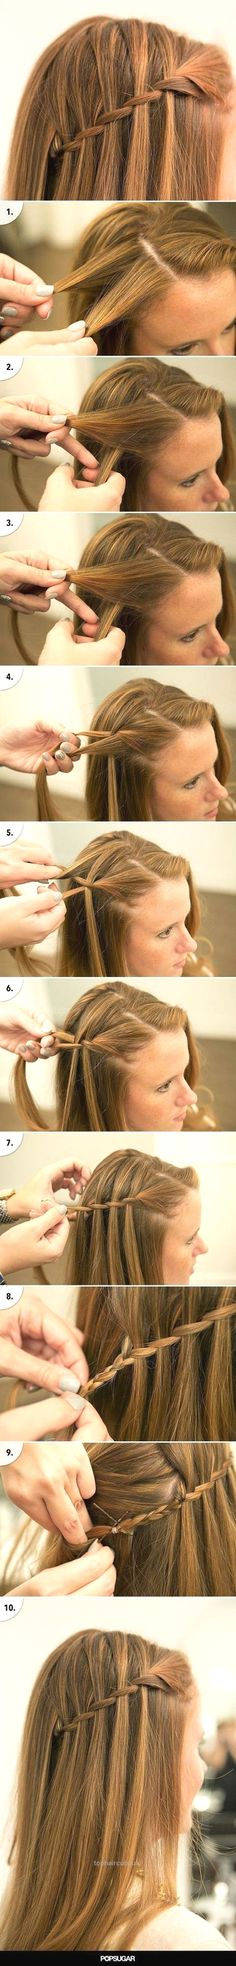 40 Easy Hairstyles for Schools to Try in 2016 | www.barneyfrank.n…… 40 Easy Hairstyles for Schools to Try in 2016 | www.barneyfrank.n… http://www.tophaircuts.us/2017/11/25/40-easy-hairstyles-for-schools-to-try-in-2016-www-barneyfrank-n/